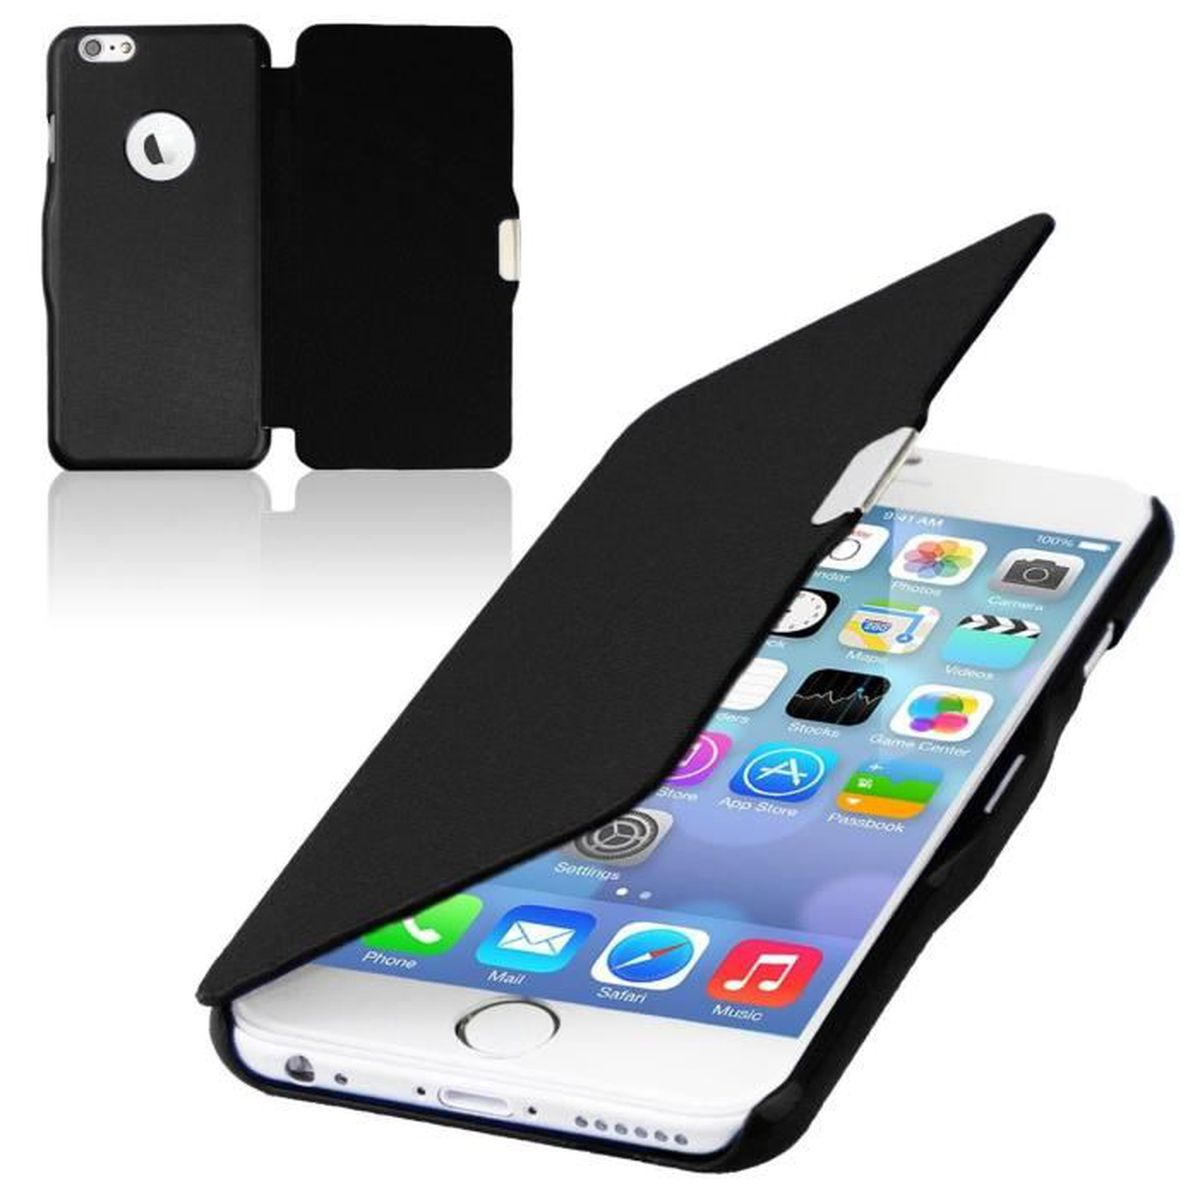 Coque Iphone  Rabattable